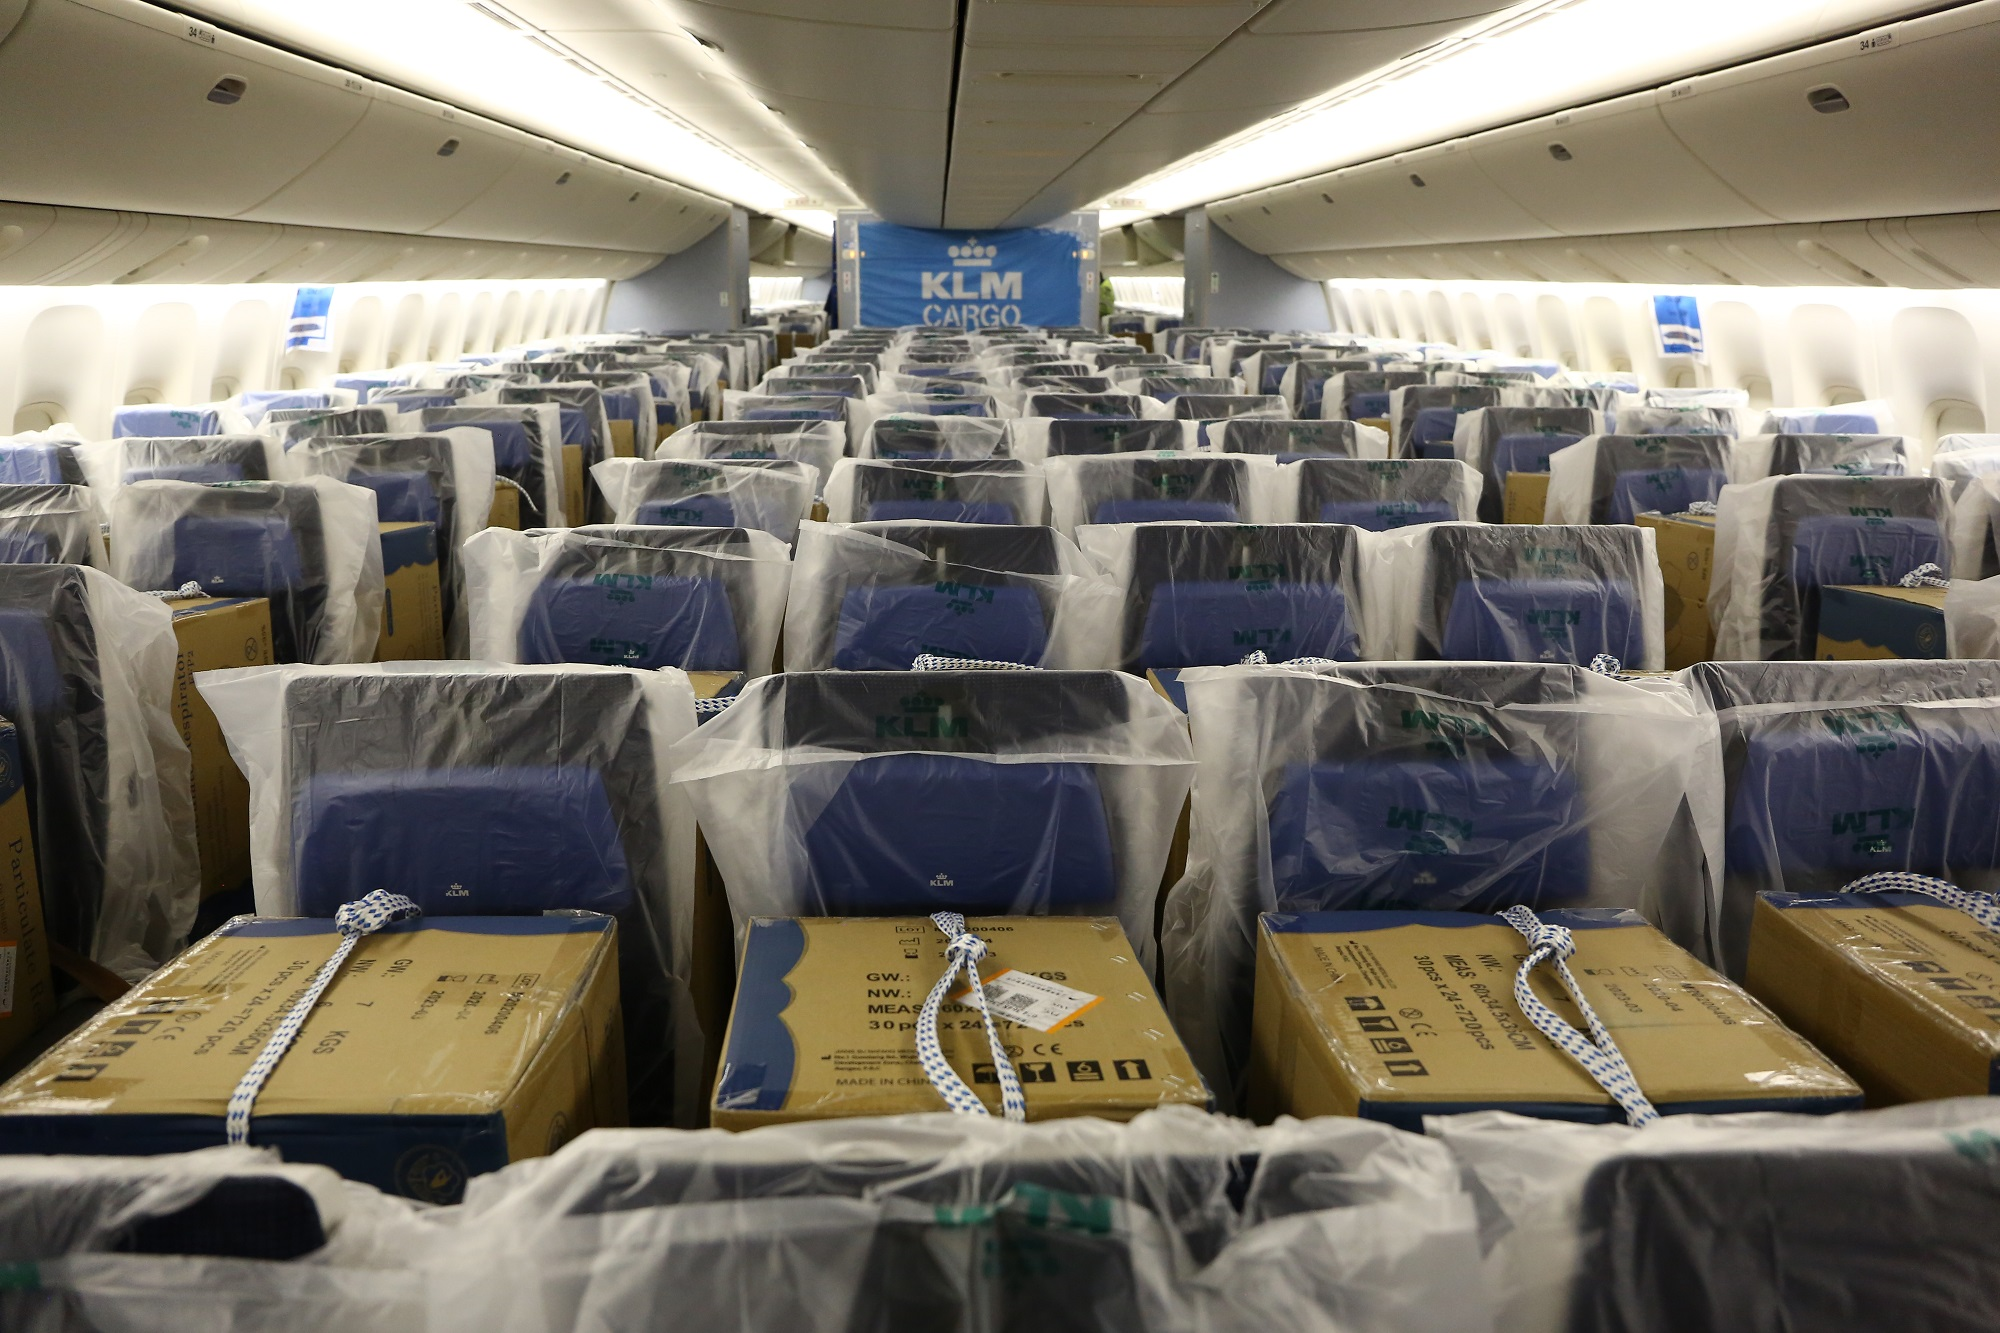 Trip & Co announces patent pending for cargo in cabin innovations